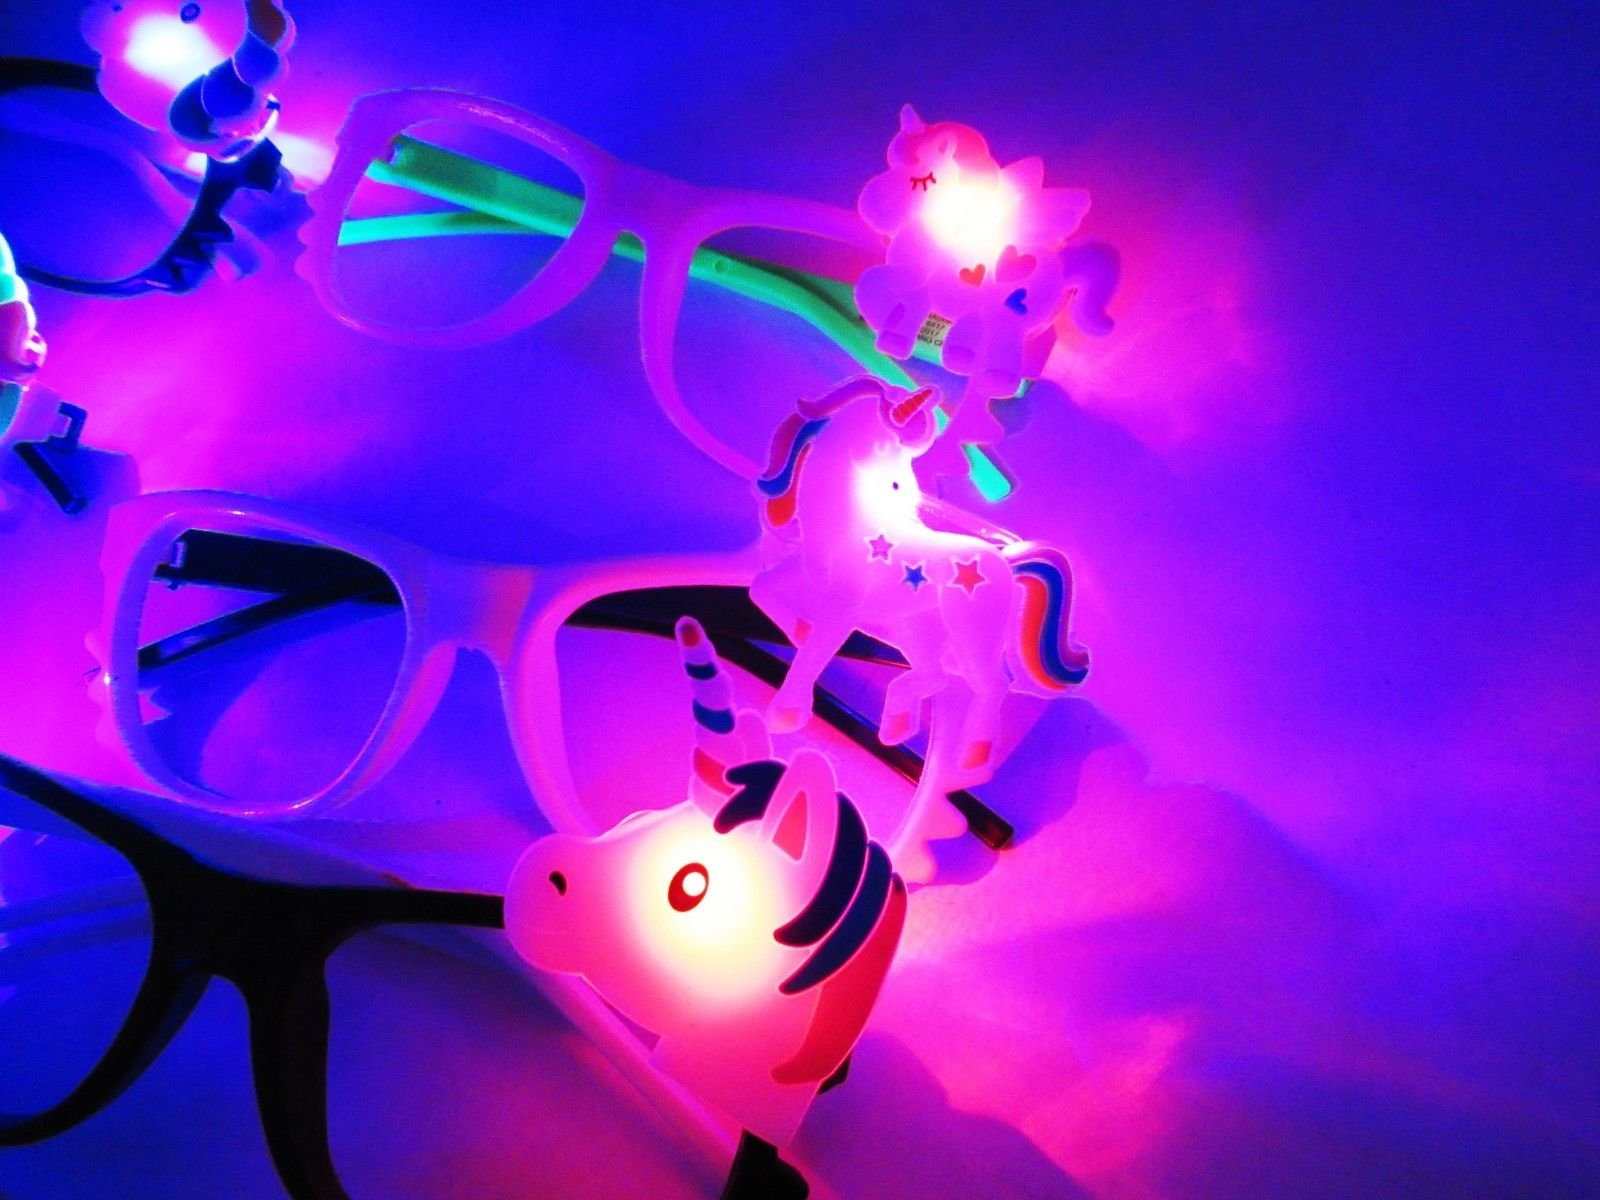 Toycamp 12/pk Flashing Lensless Assorted Unicorn Glasses LED SunGlasses Rave Party Wear by Toycamp (Image #3)